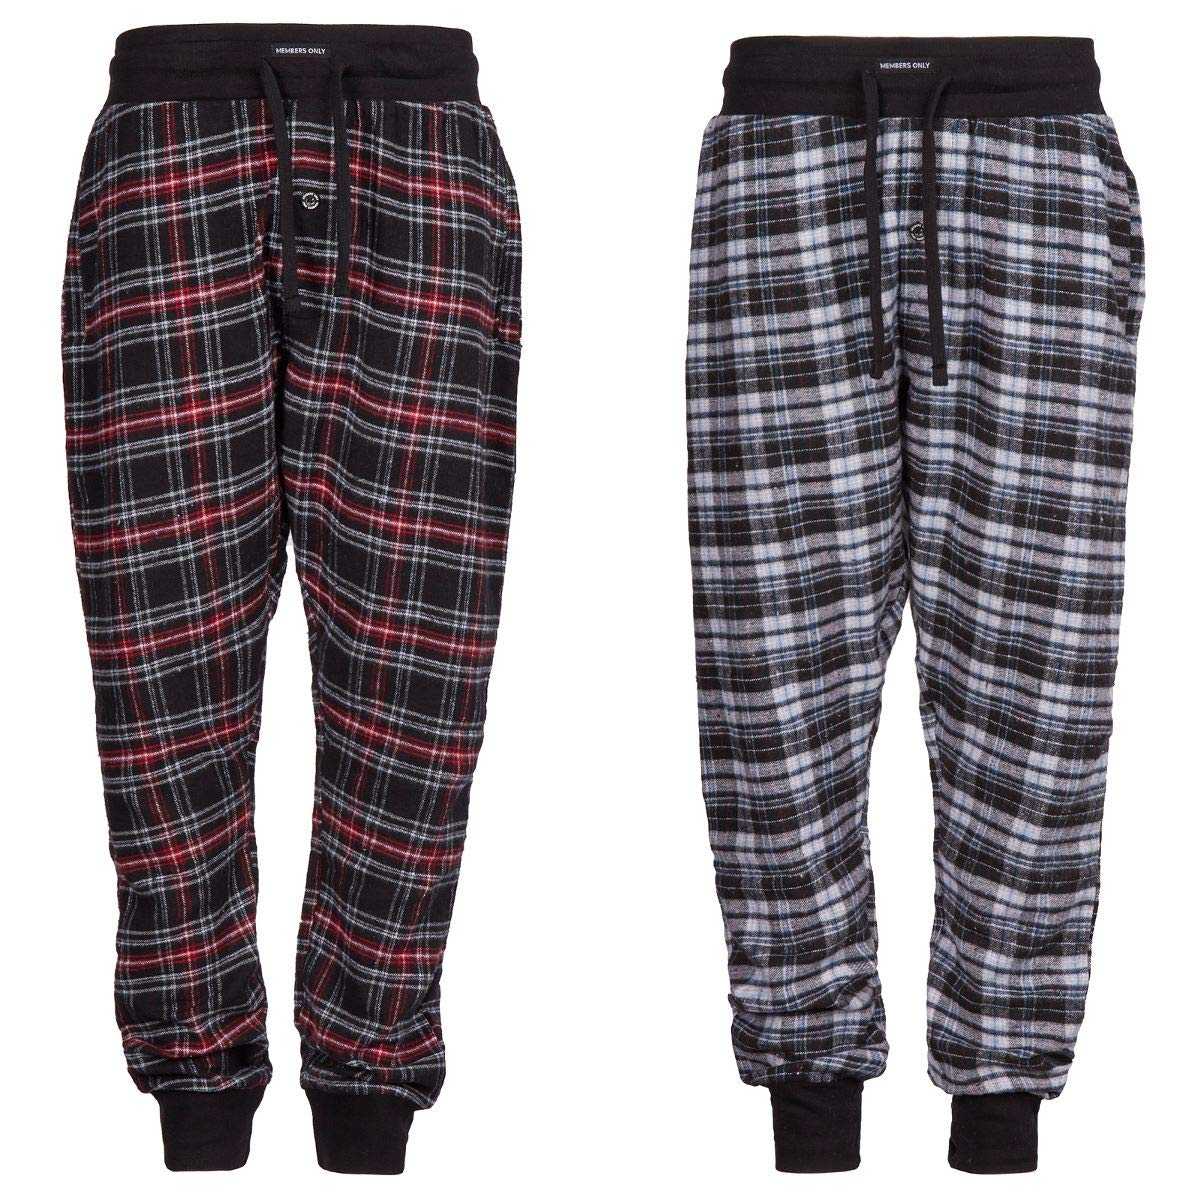 Style It Up Pack of 2 Check Design with Elasticated Waist and Cuffs Mens Pyjama//Lounge Pants